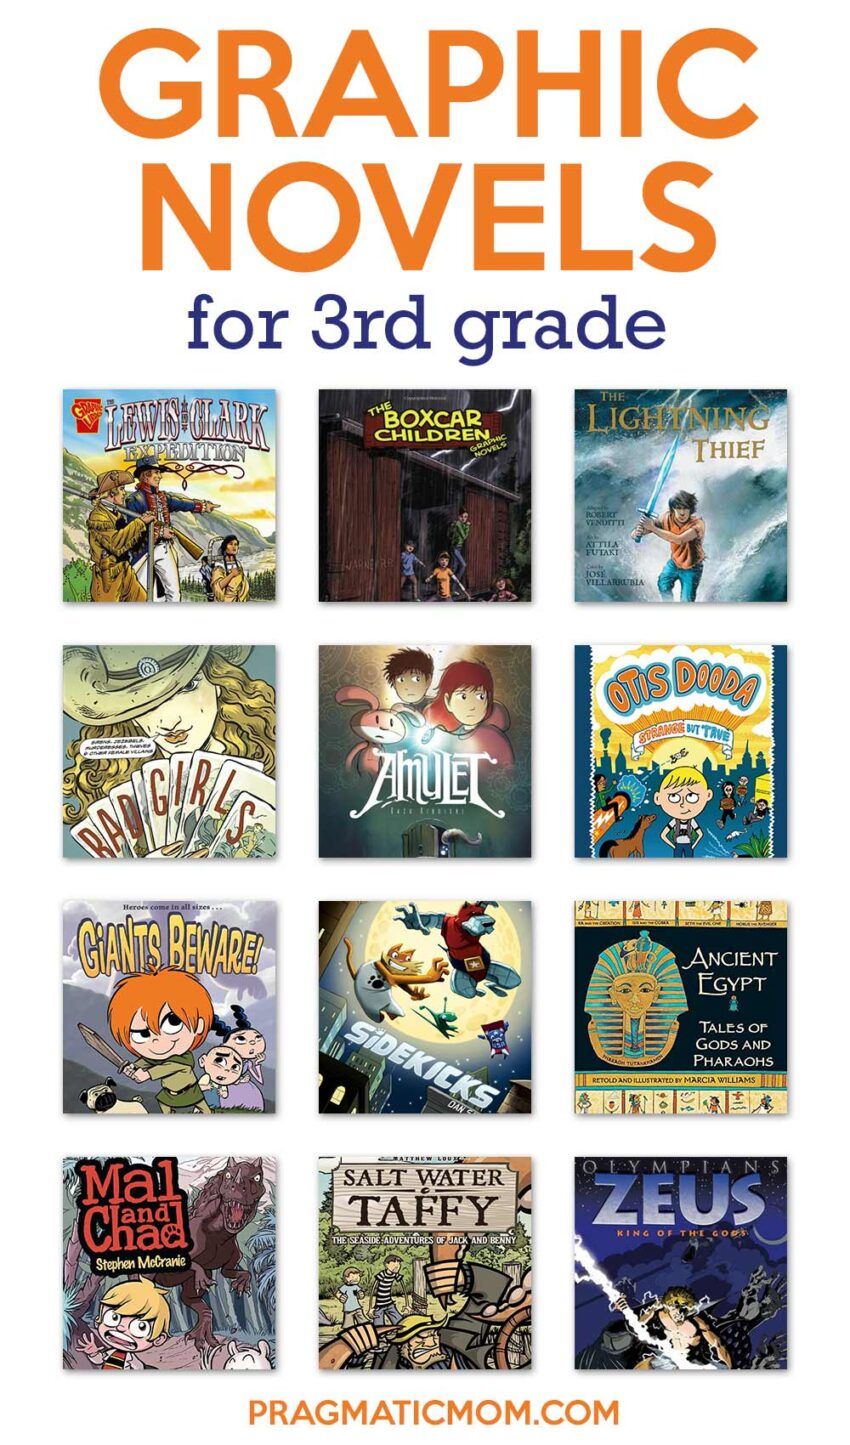 Graphic Novels for 3rd Grade